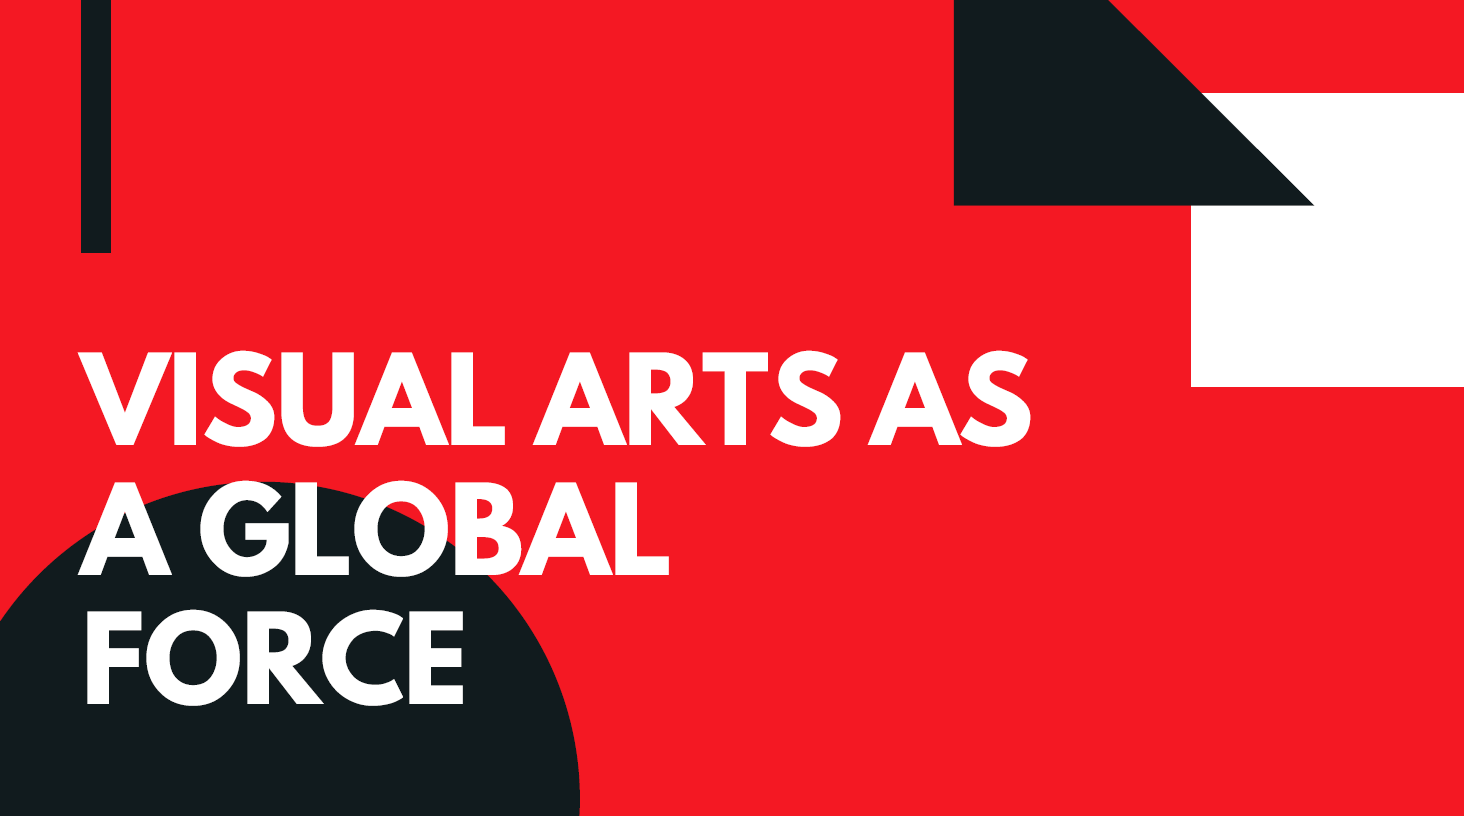 Visual Arts as a Global Force - New Banner Header.png